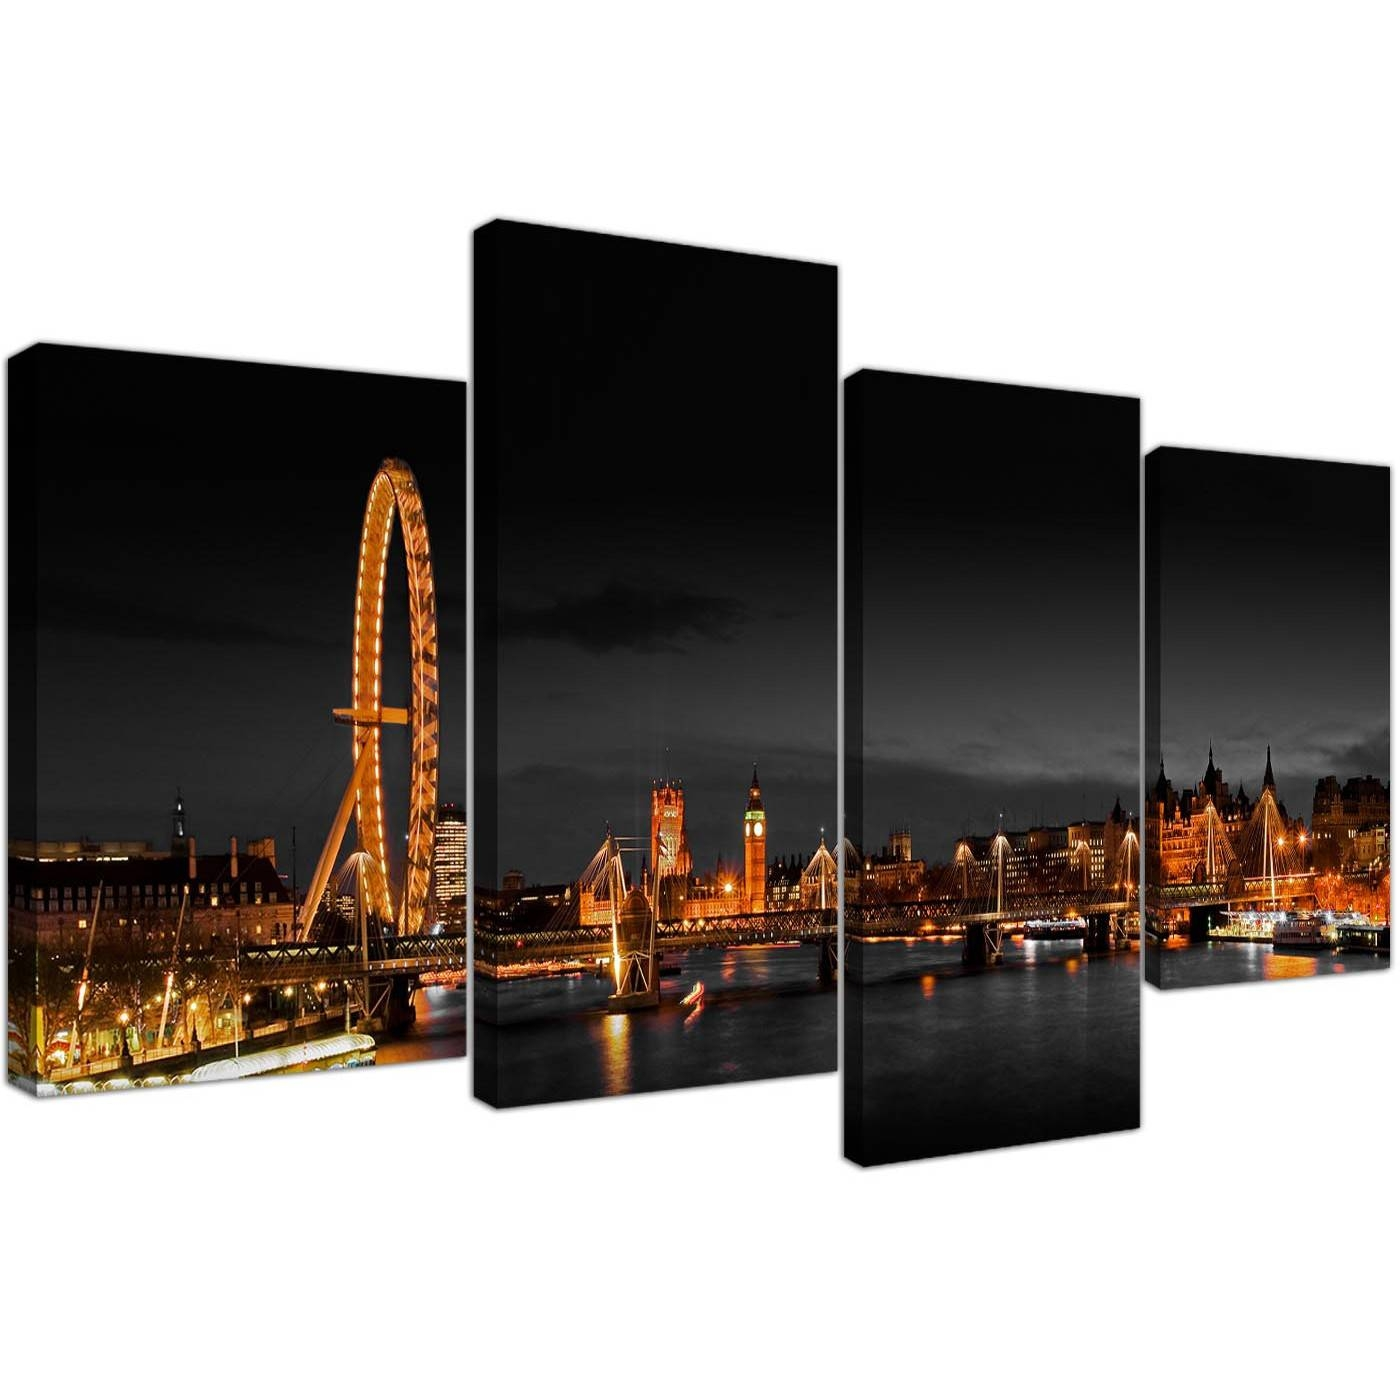 Canvas Wall Art Of Night Time London Eye For Your Office – Set Of 4 Throughout Most Popular London Scene Wall Art (View 4 of 20)